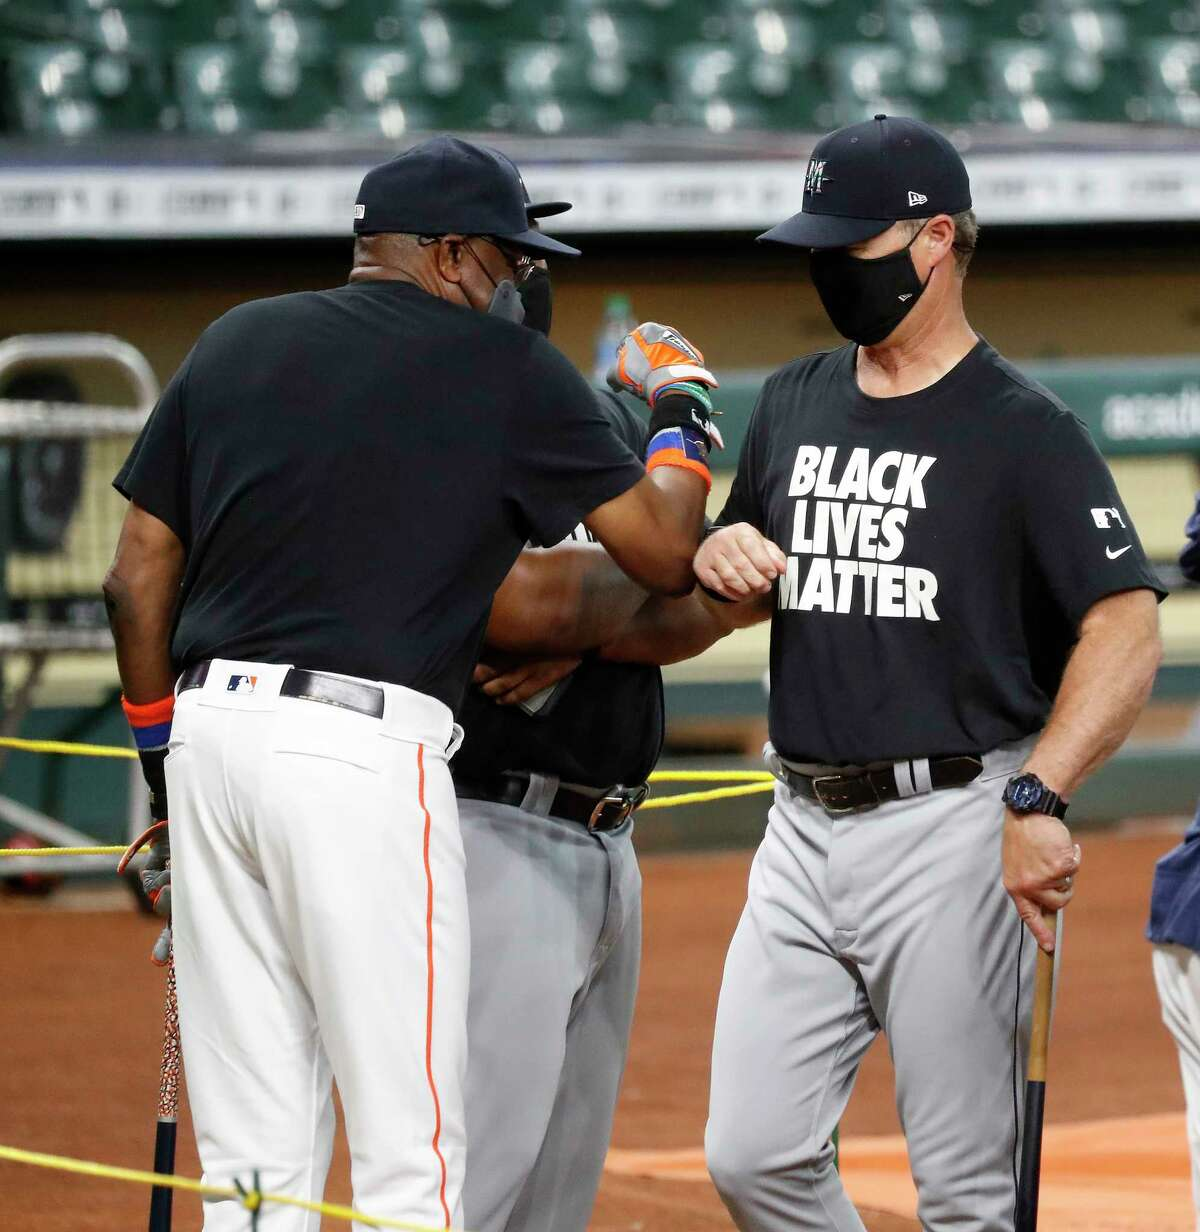 Houston Astros manager Dusty Baker elbow bumps Seattle Mariners manager Scott Servais during batting practice before the start of the Houston Astros Opening Day at Minute Maid Park, Friday, July 24, 2020, in Houston.